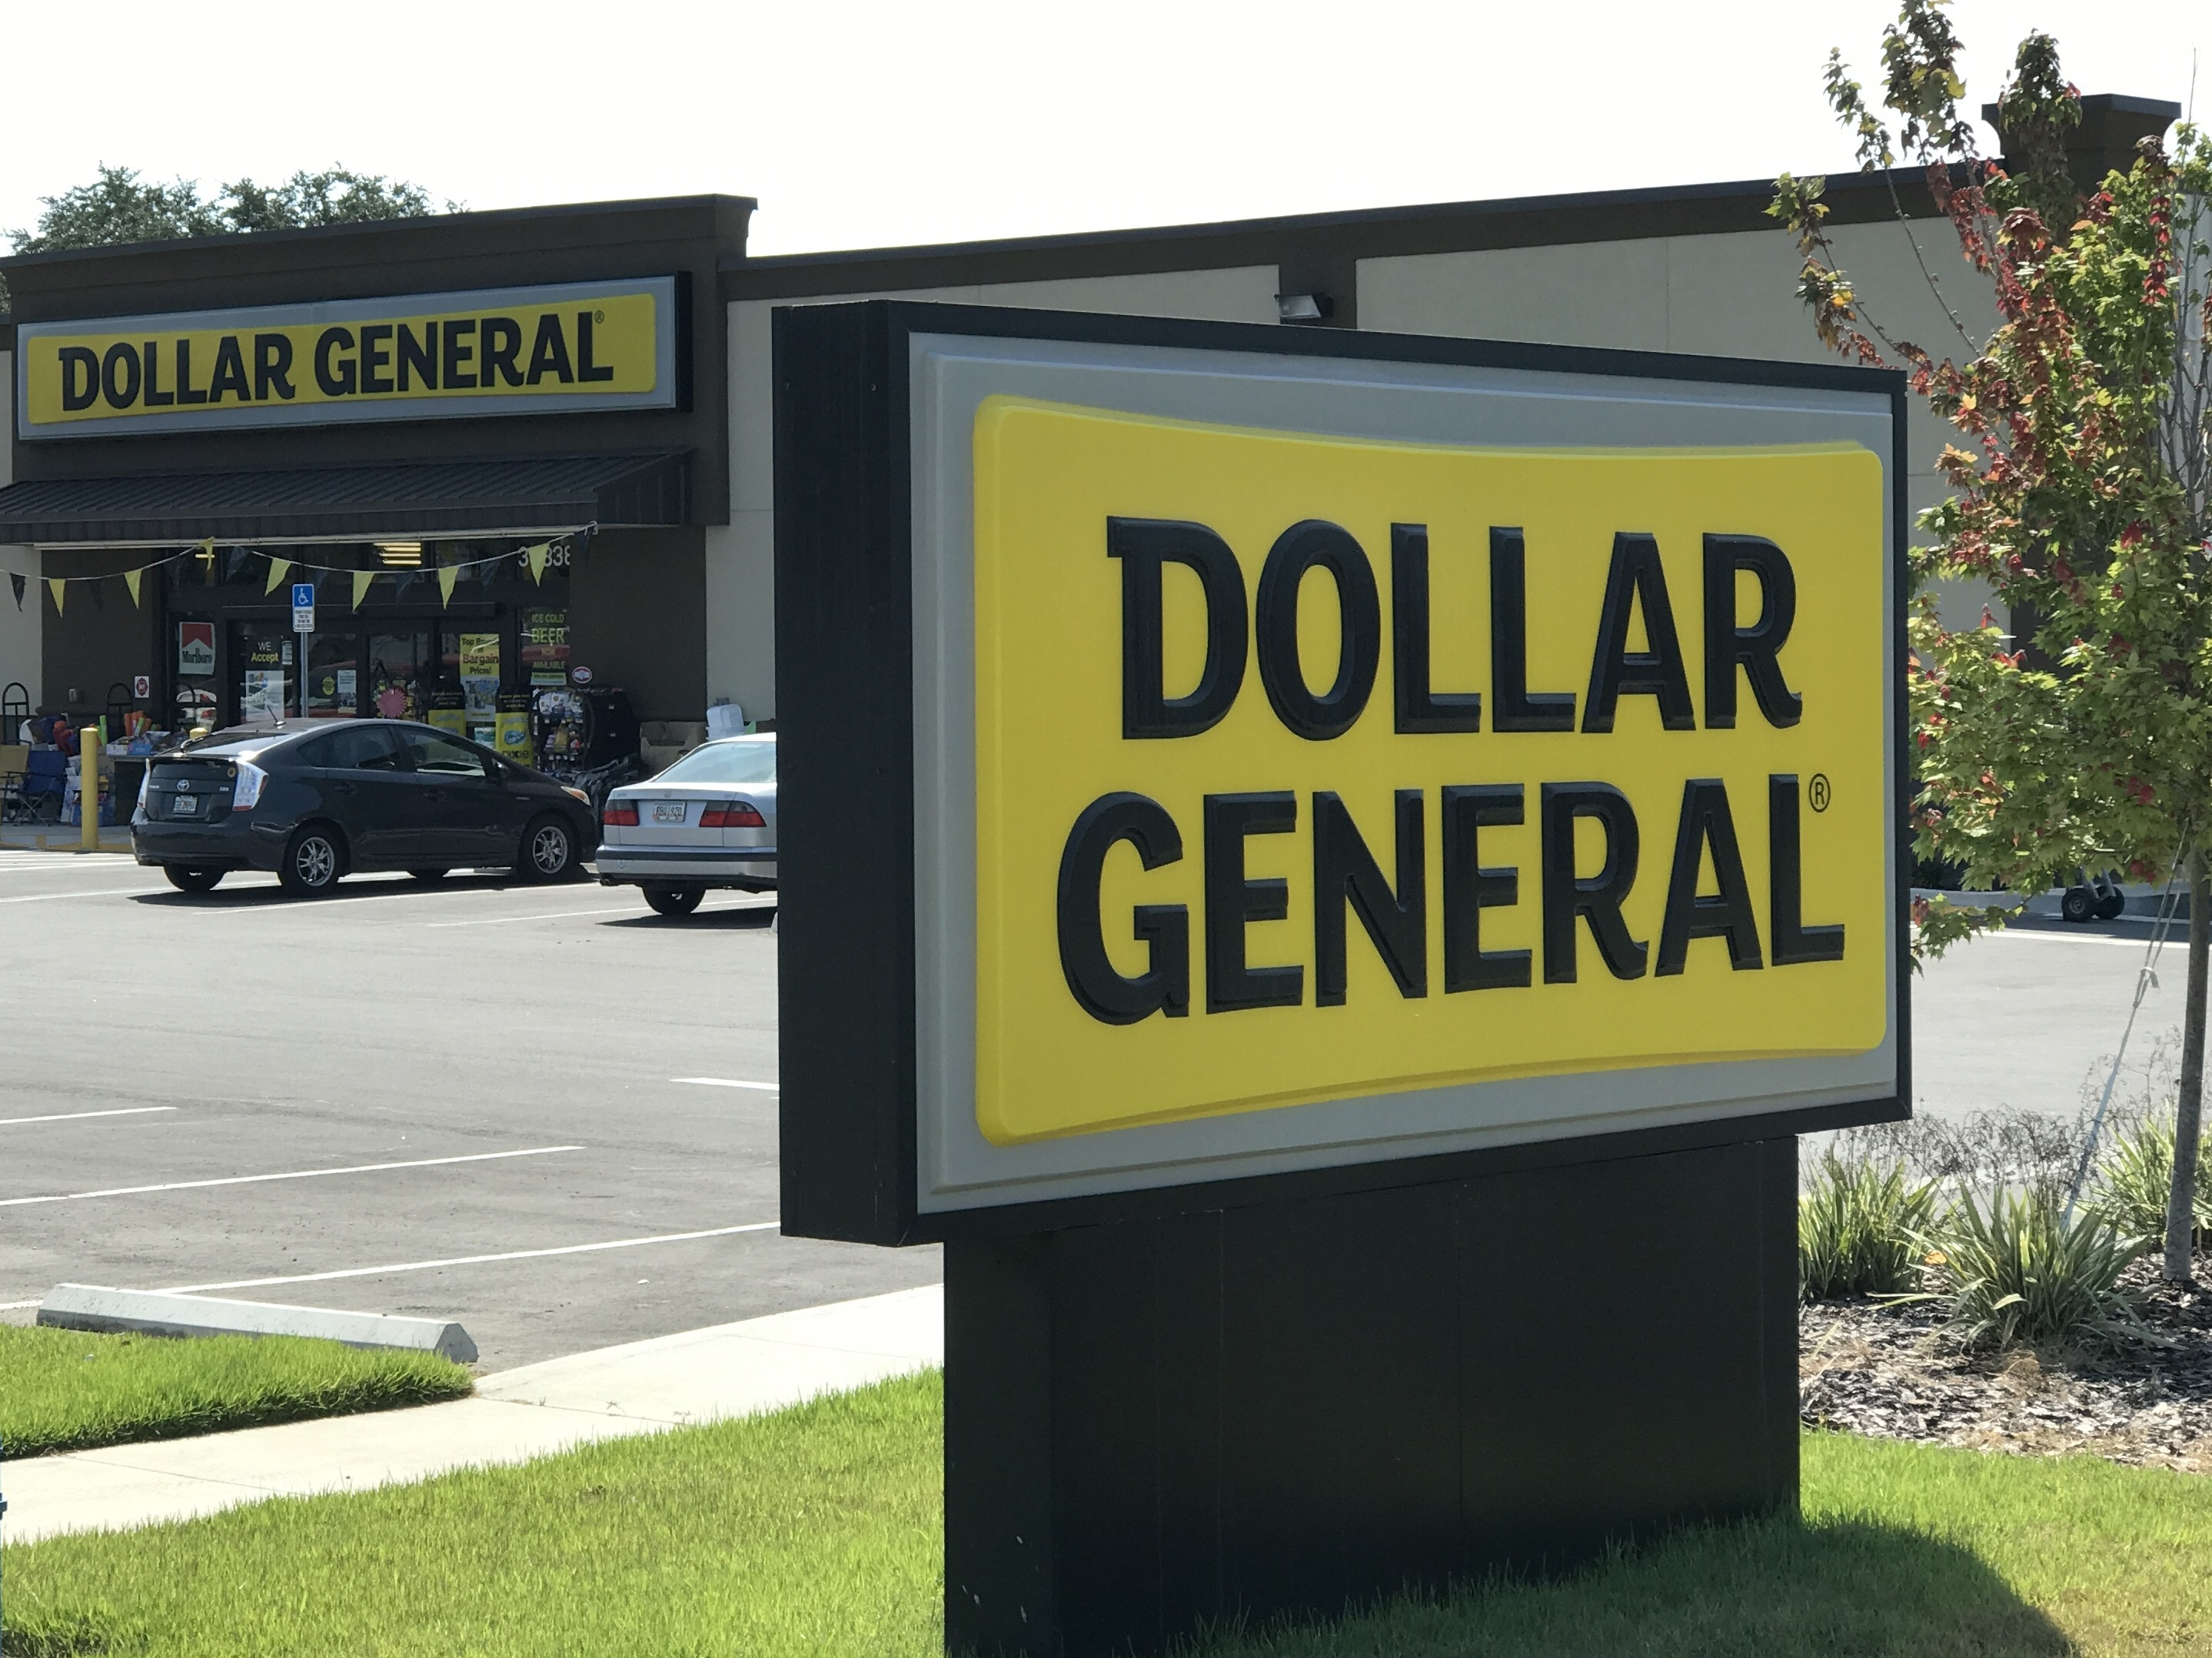 Dollar General announces store growth plans, remodeling efforts